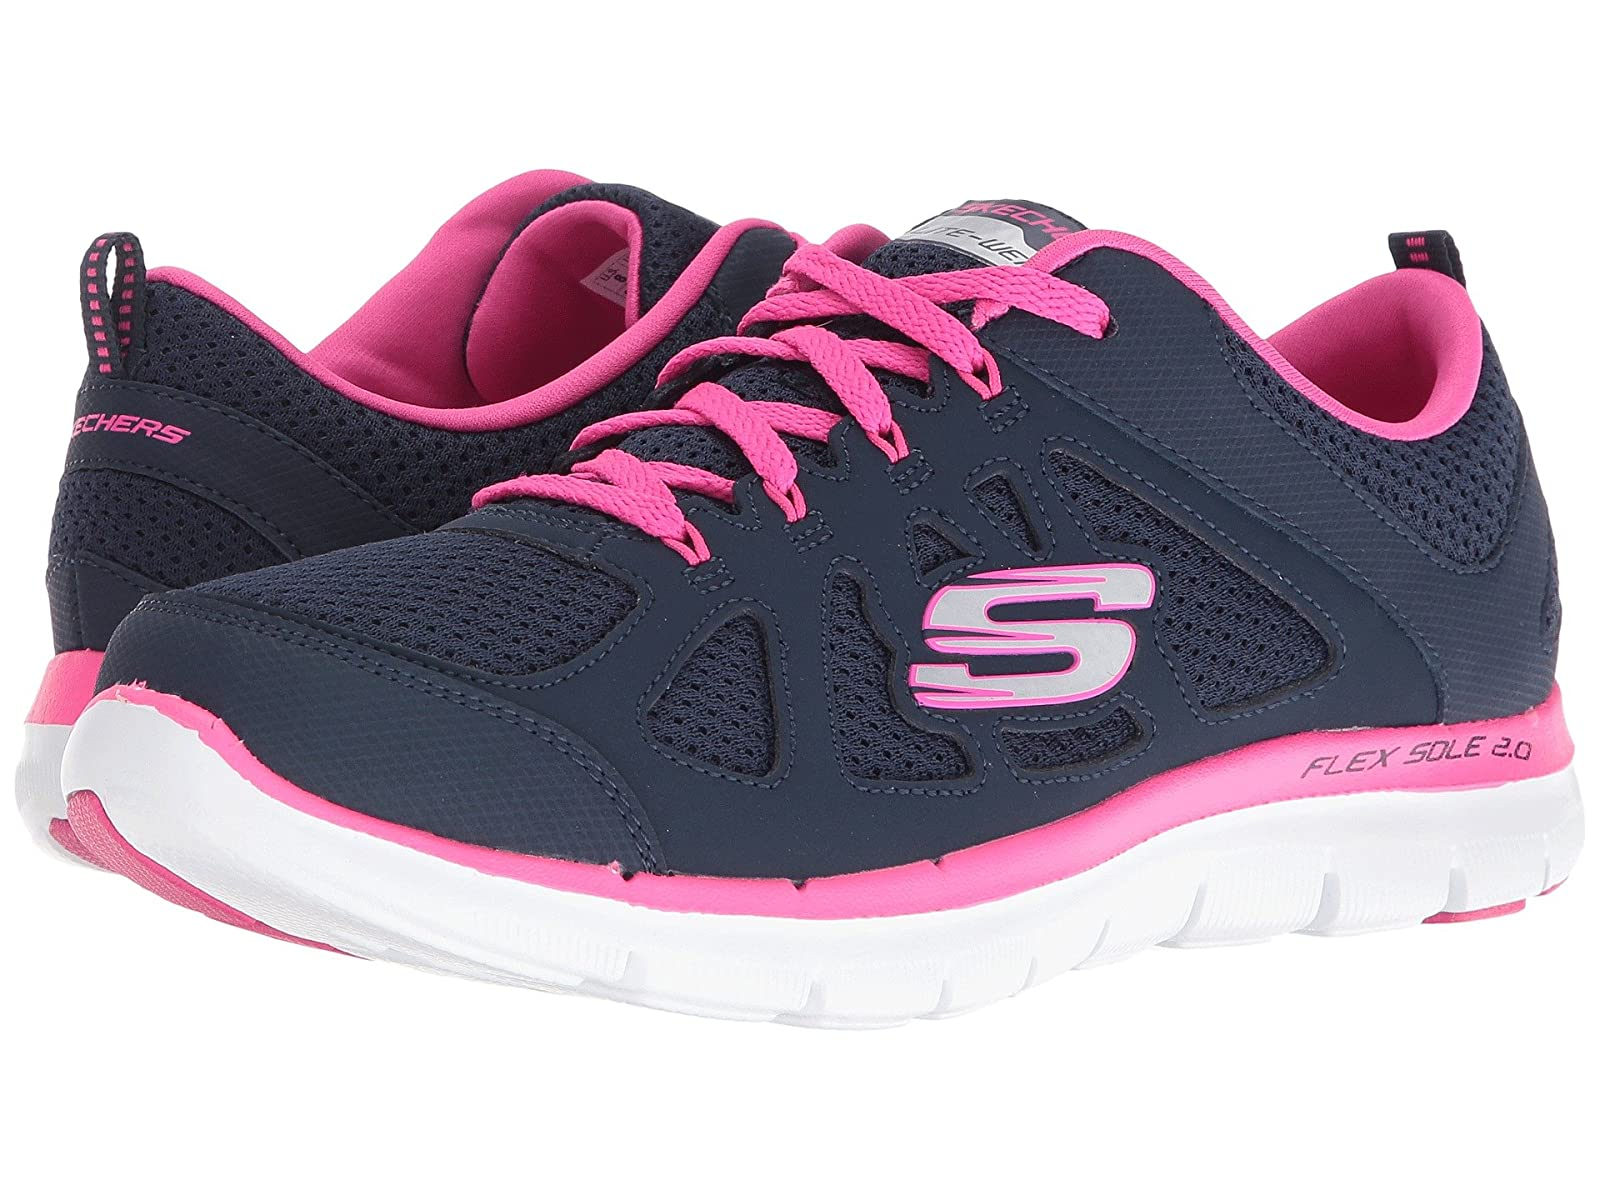 SKECHERS Flex Appeal 2.0 - SimplisticCheap and distinctive eye-catching shoes